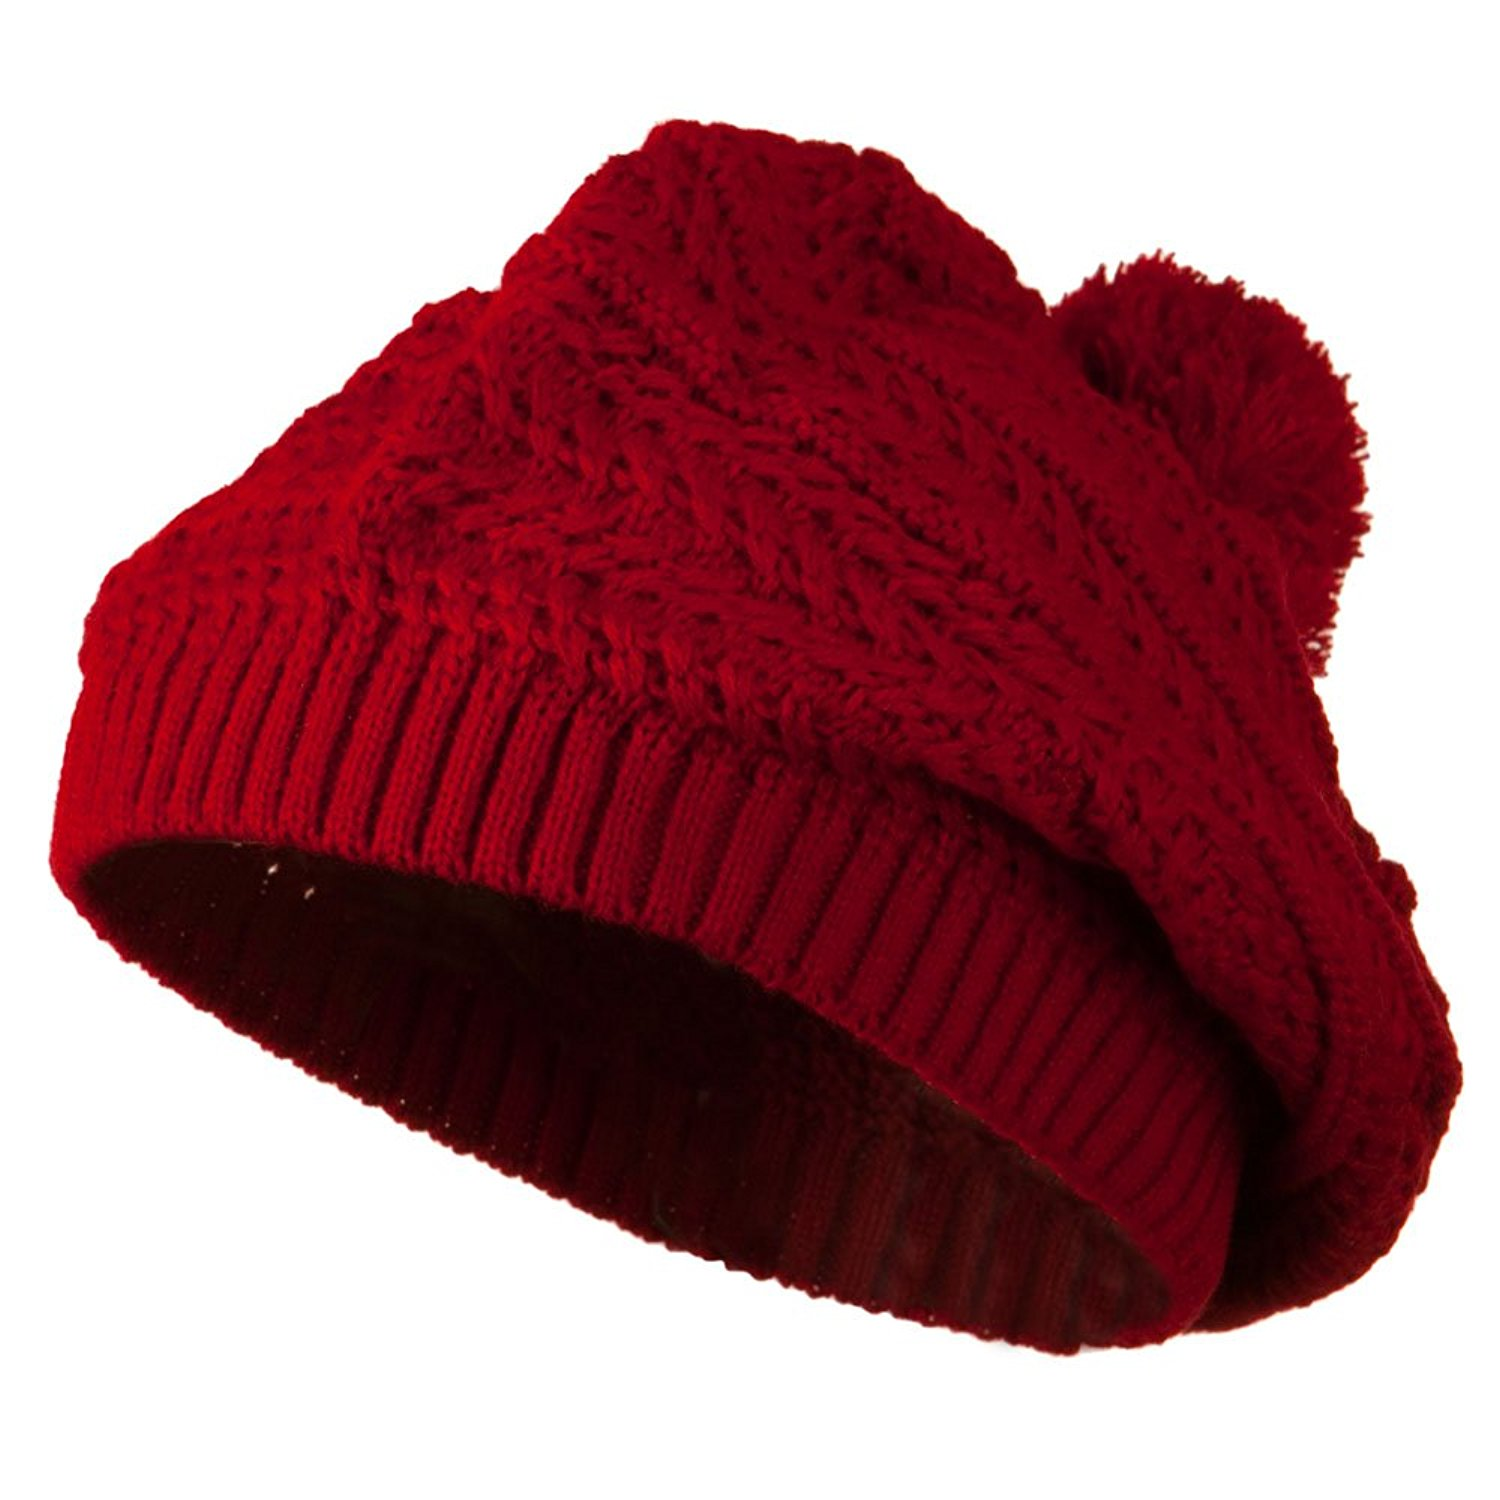 Slinky Knit Beret with Pom Pom - Red W24S27F